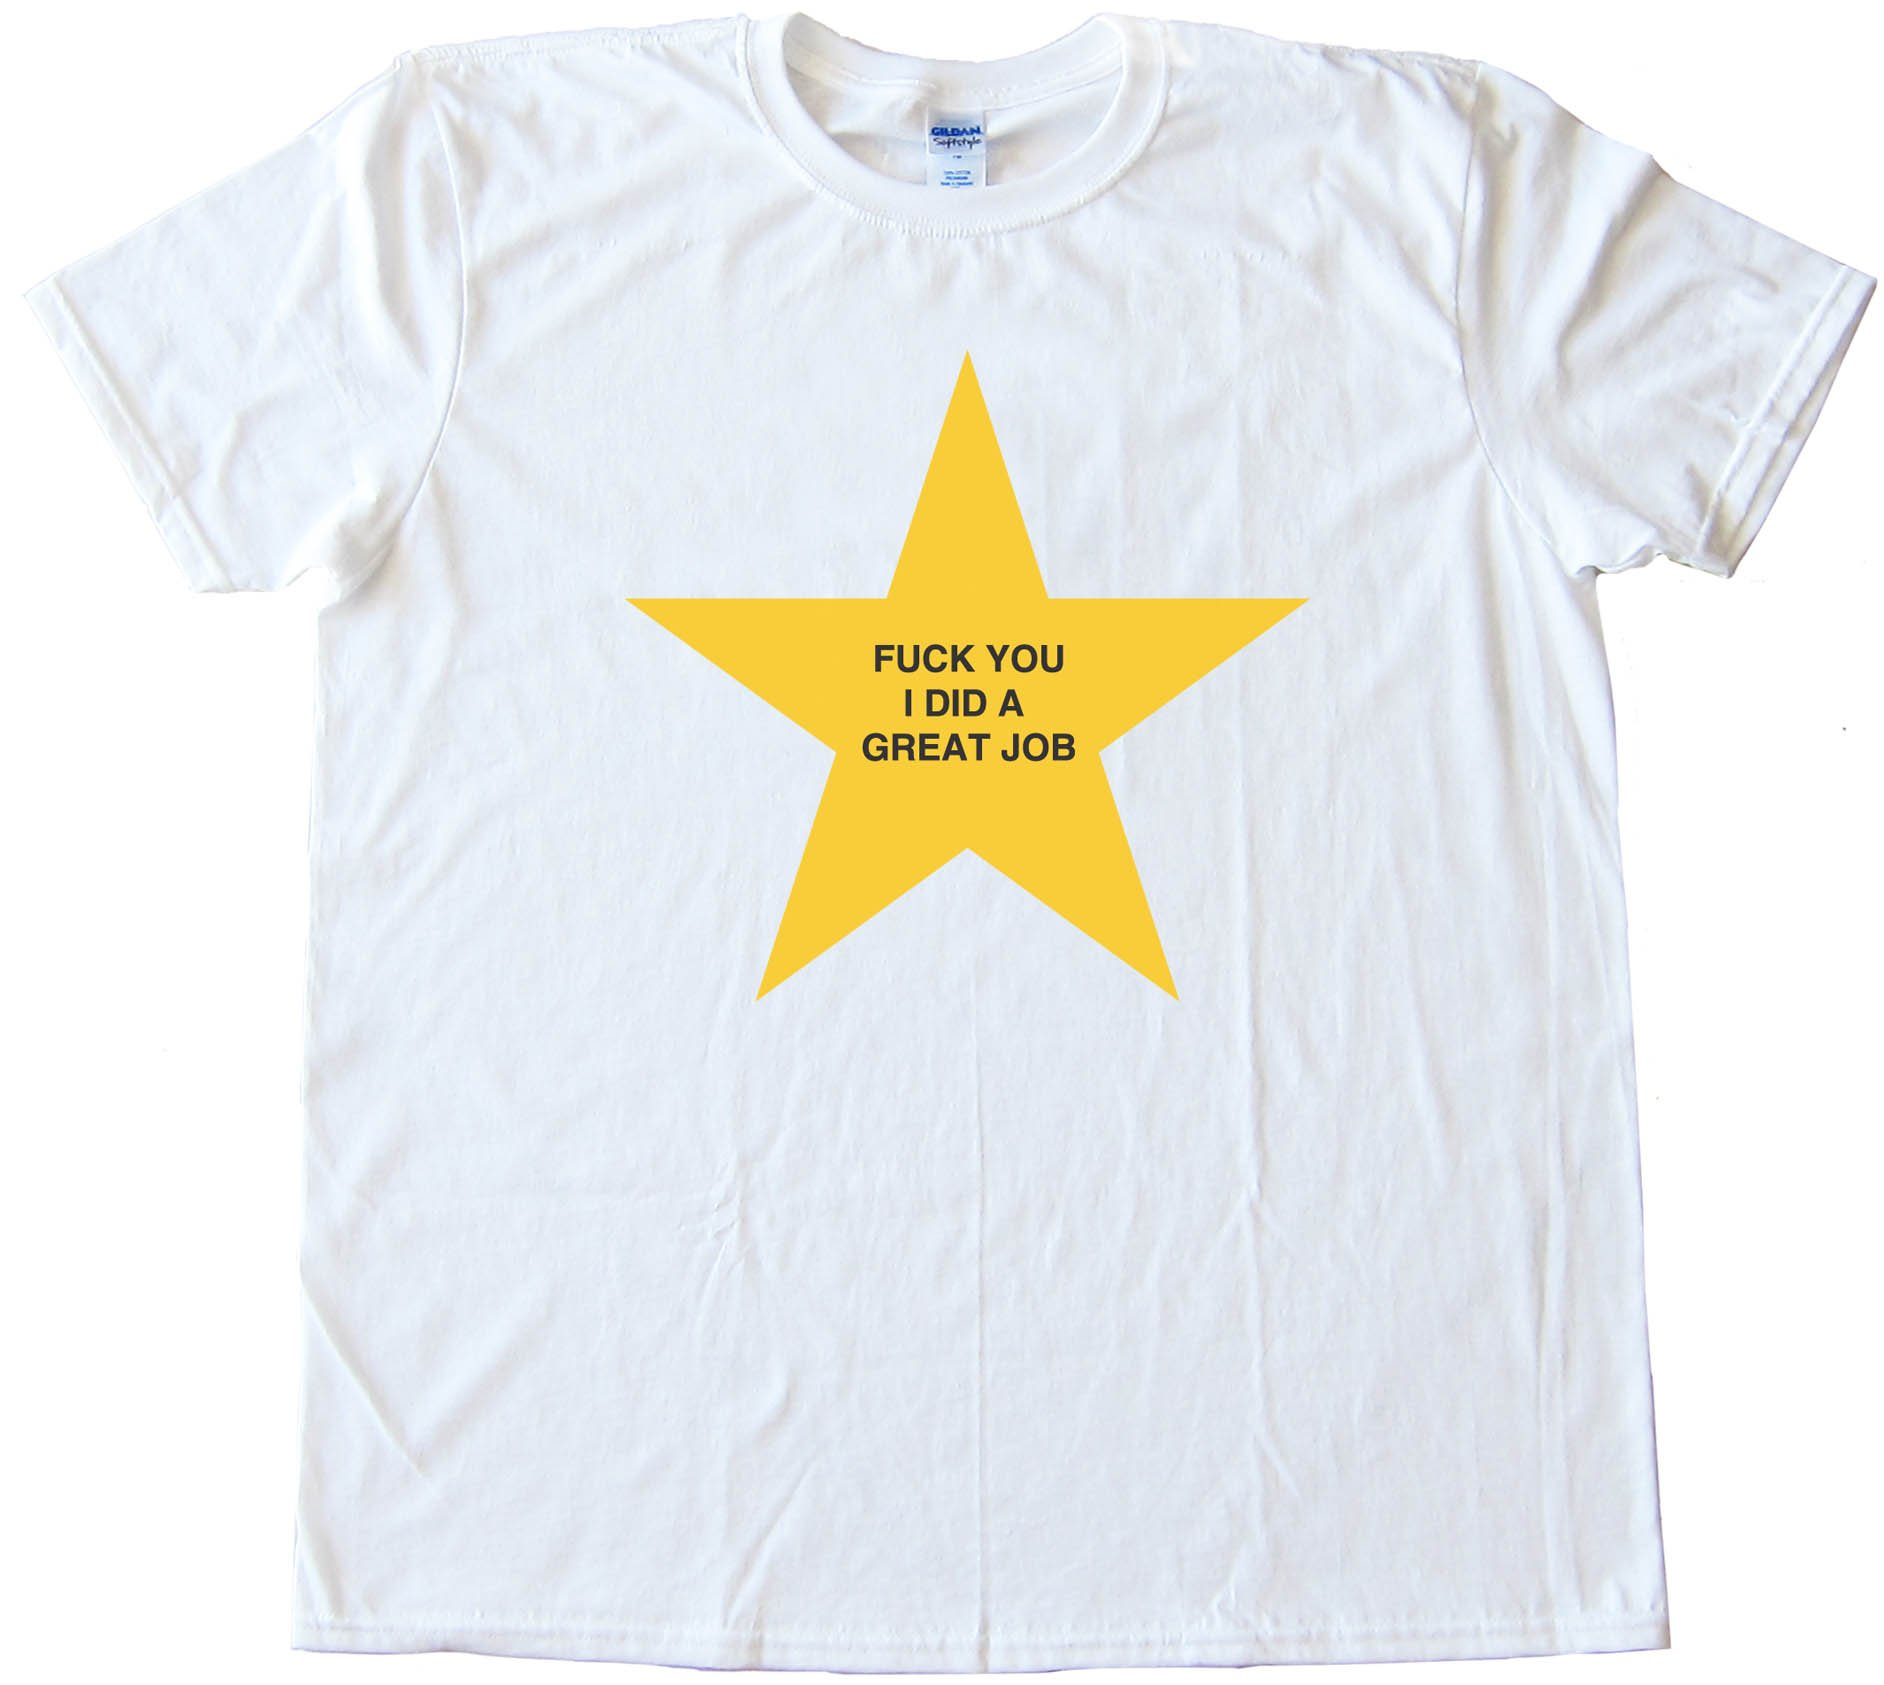 Fuck You I Did A Great Job - Gold Star - Tee Shirt